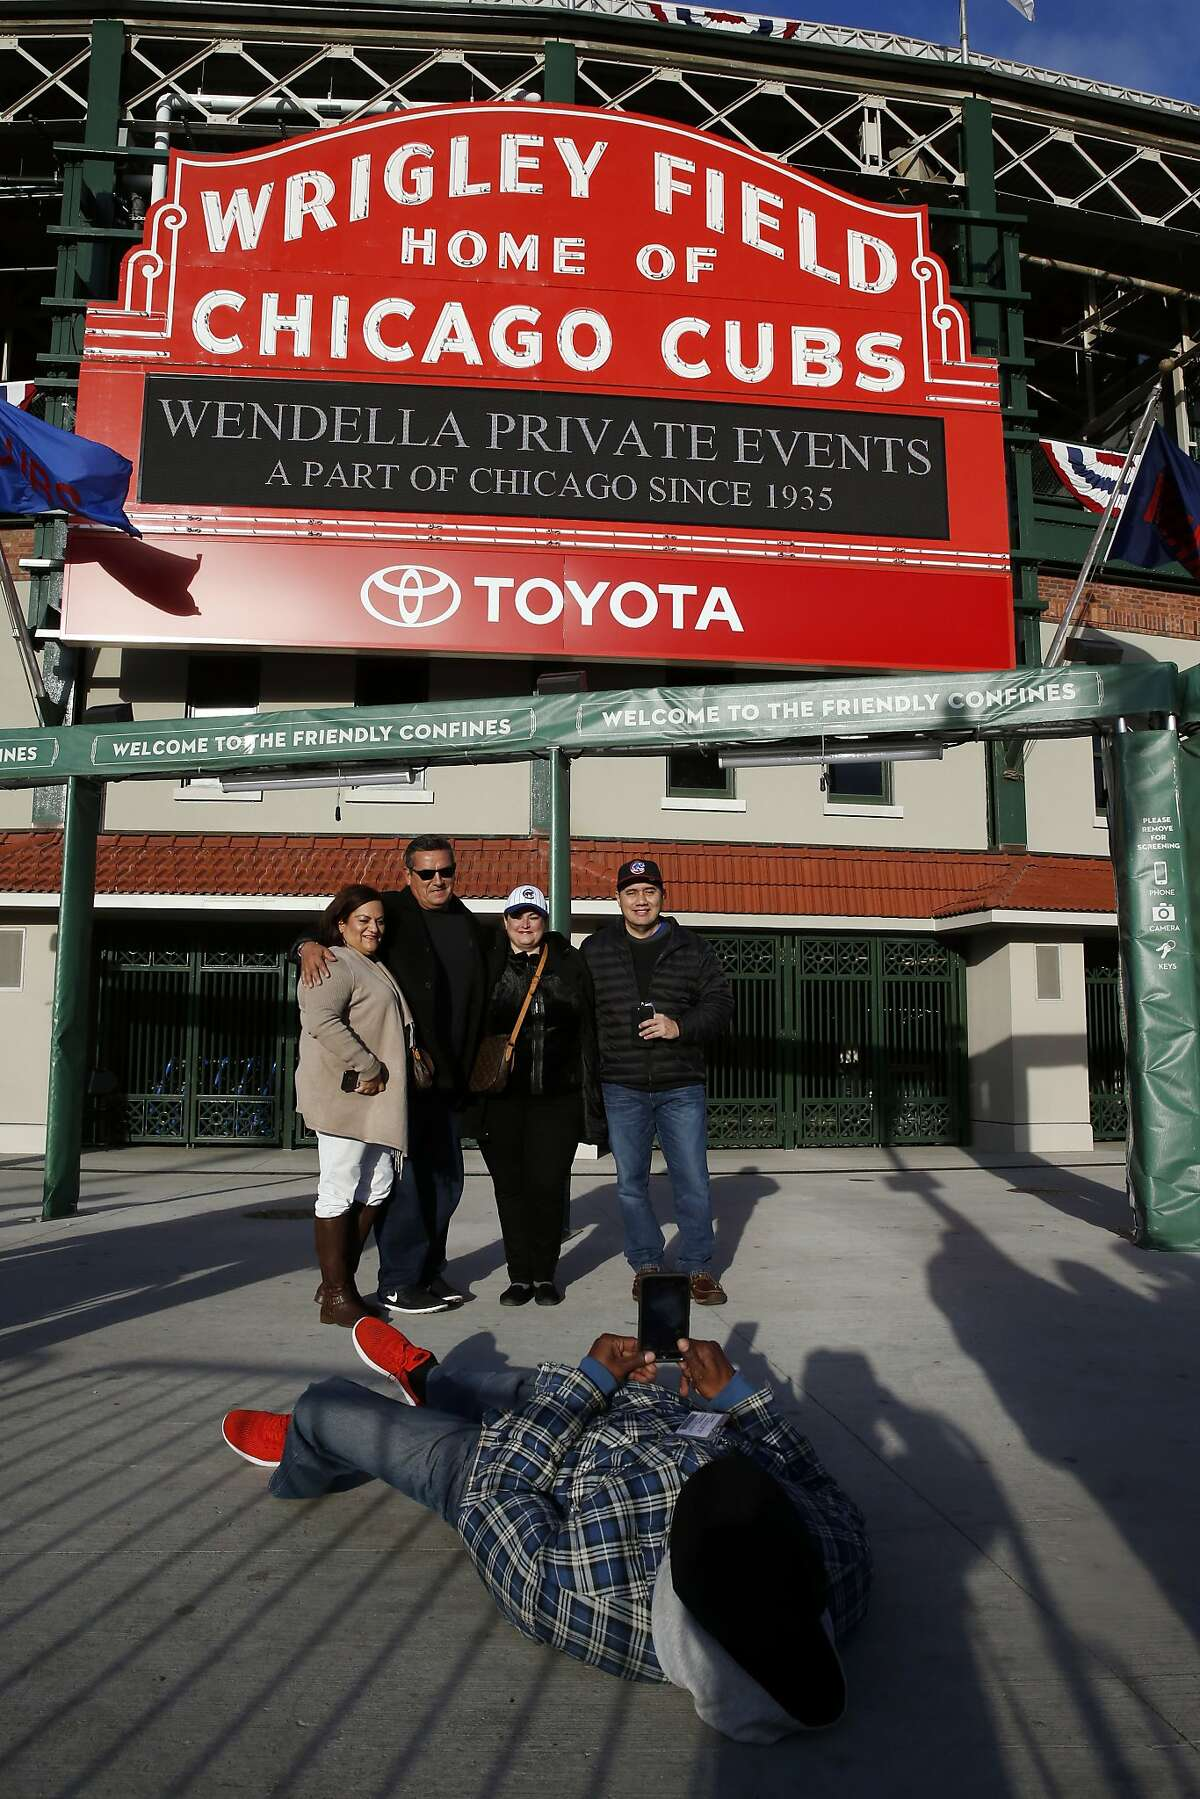 Fans gather in front of the marquee at Wrigley Field for a picture before Friday's Game 3 of the Major League Baseball World Series between the Chicago Cubs and the Cleveland Indians, Thursday, Oct. 27, 2016, in Chicago. (AP Photo/Nam Y. Huh)